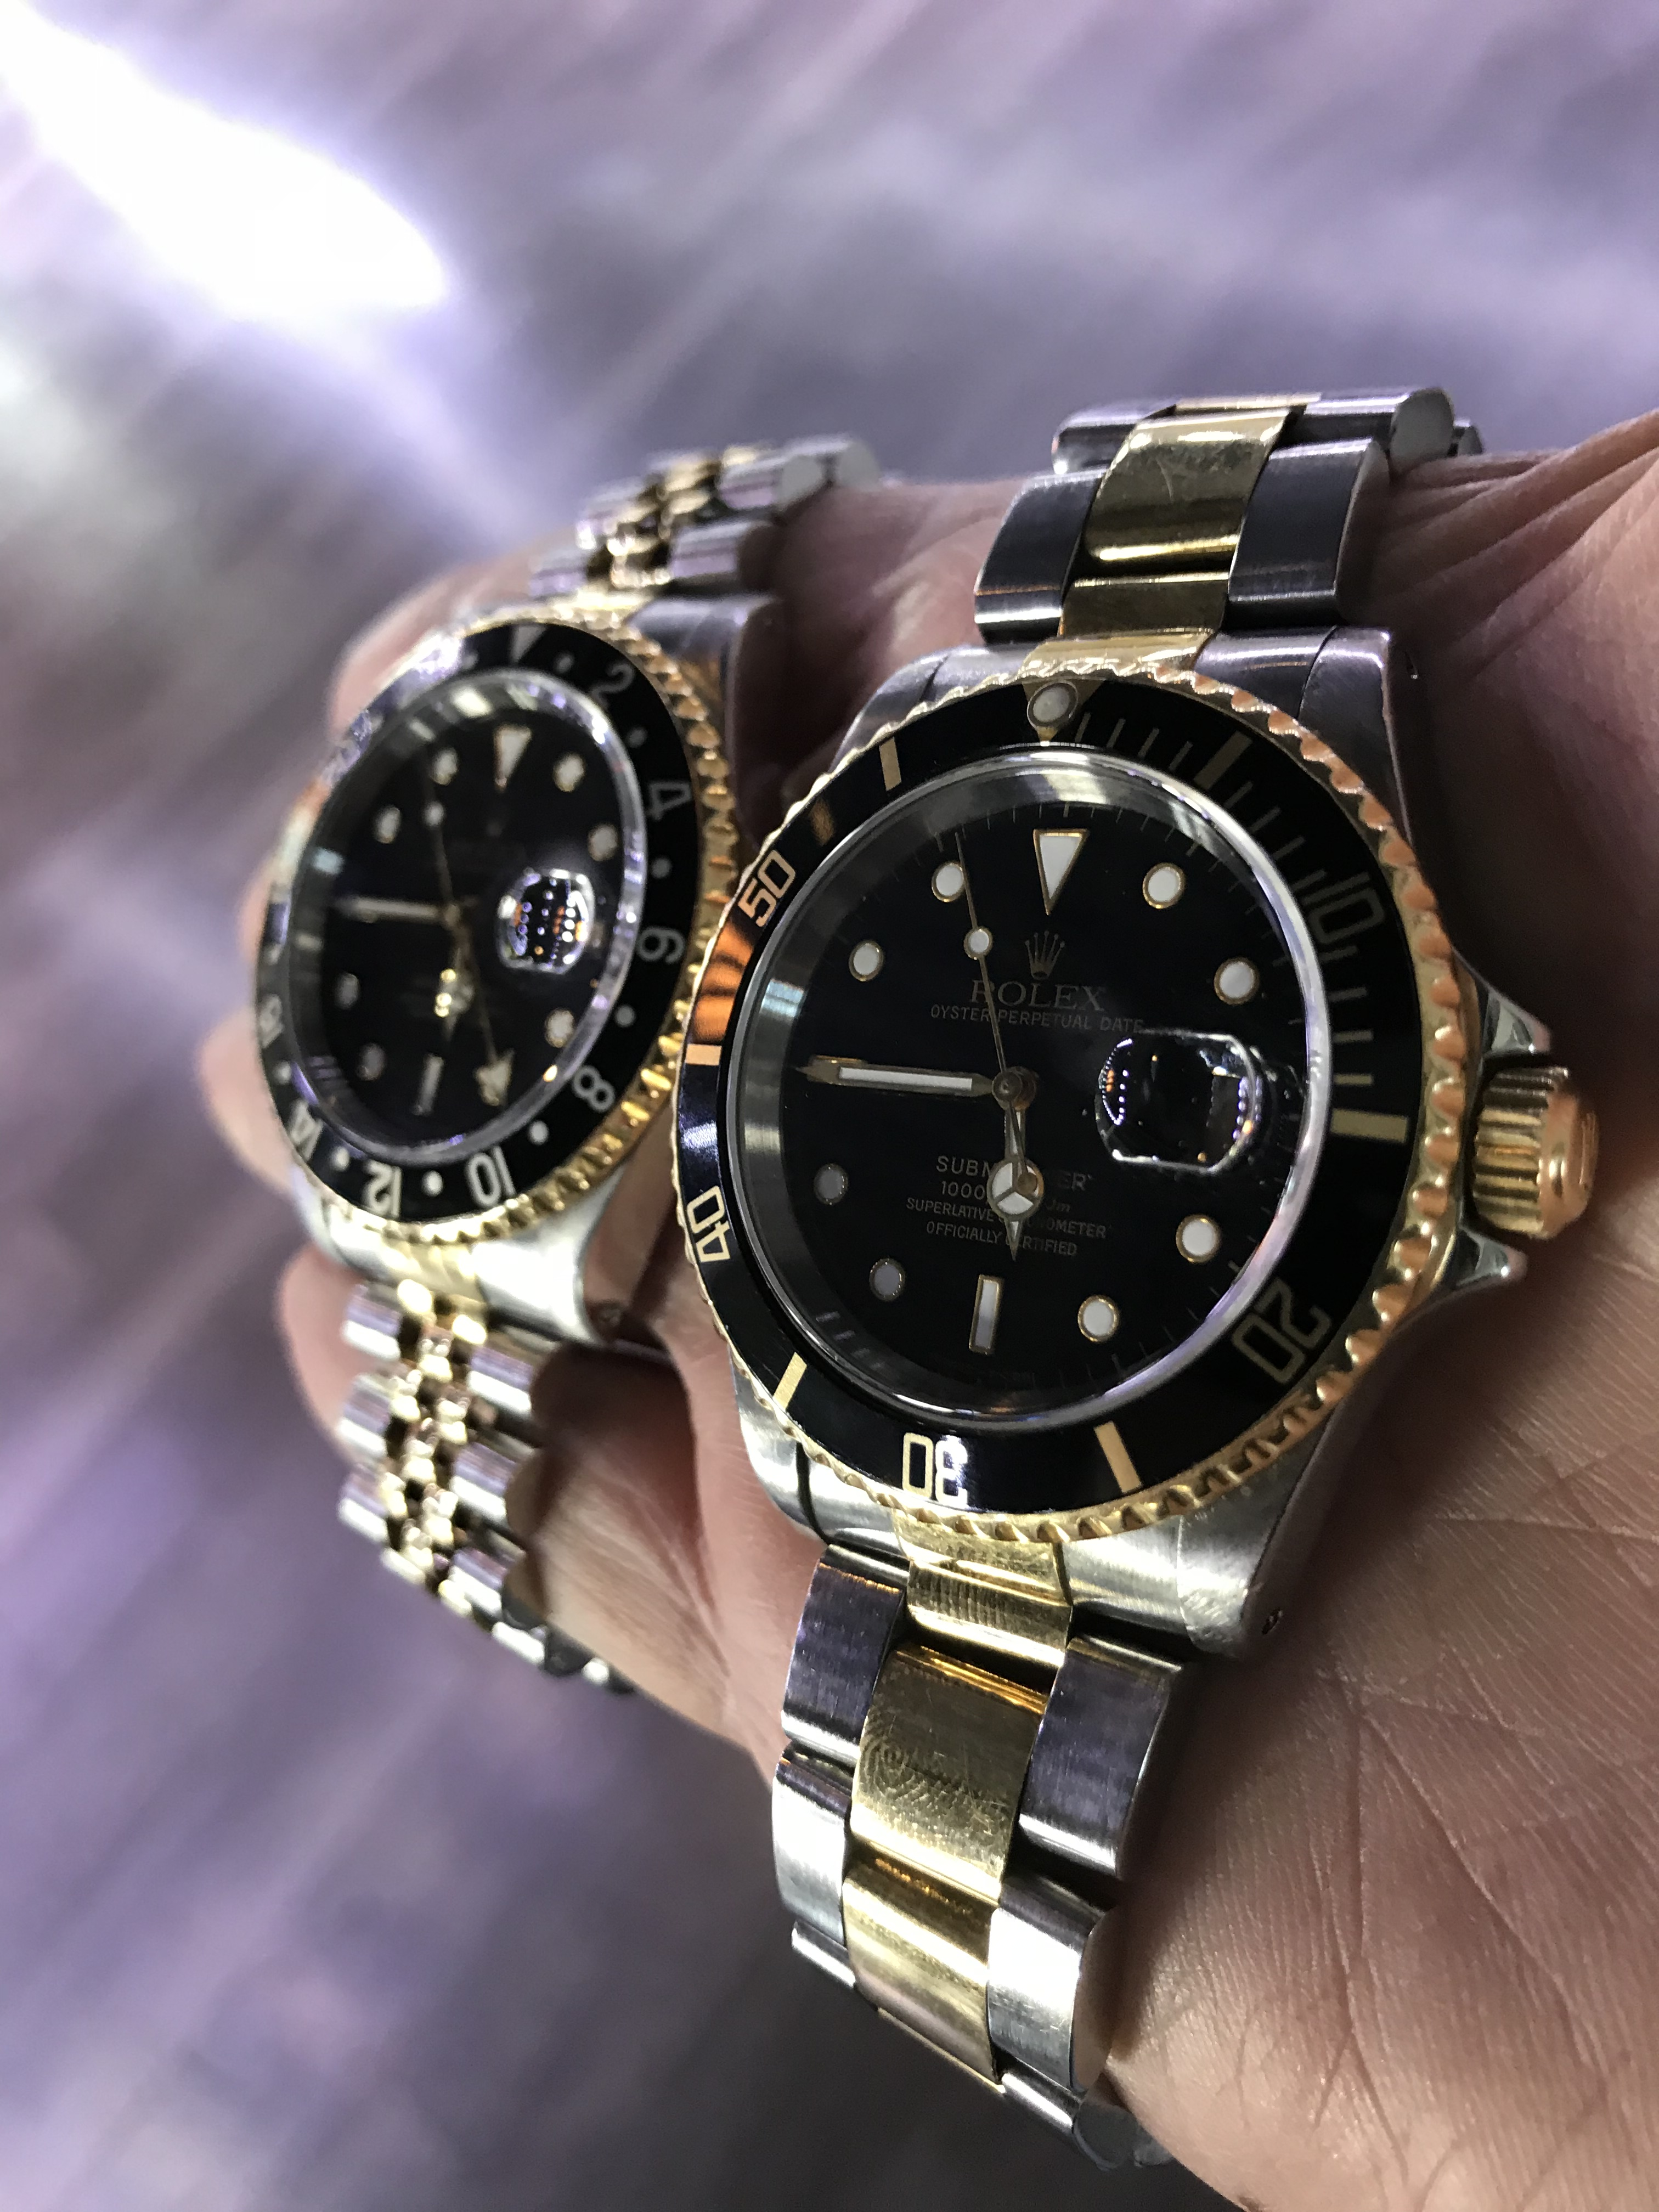 Rolex Two Tone Submariner and Rolex GMT